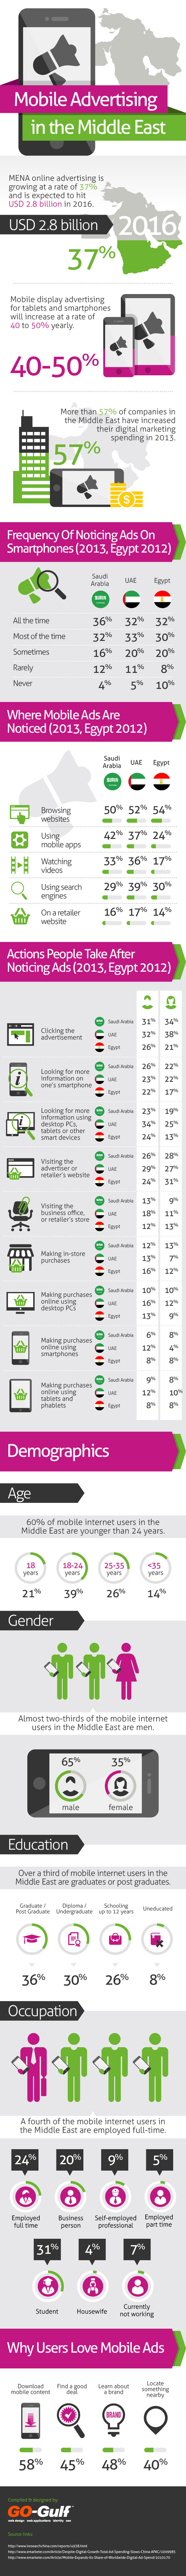 Mobile Advertising in the Middle East - Statistics and Trends